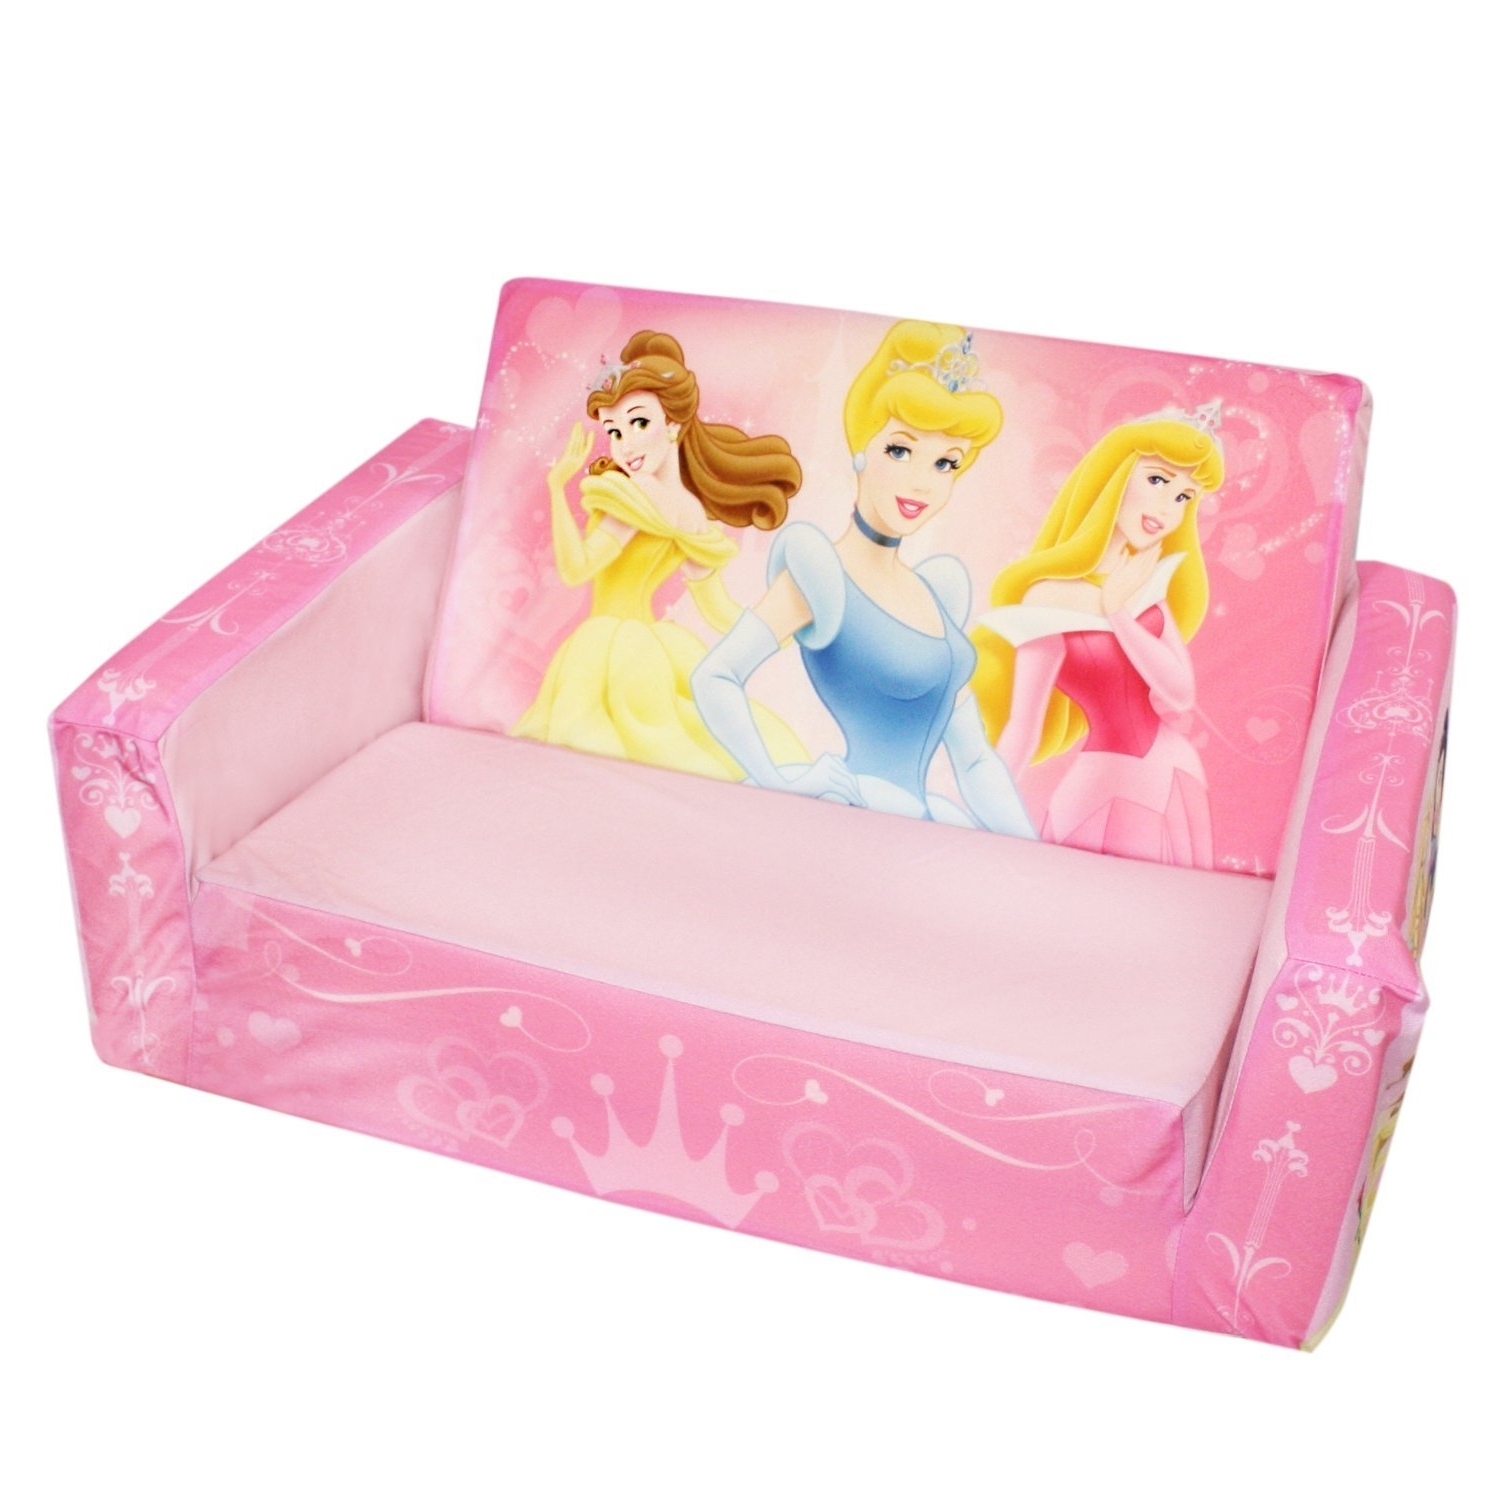 Most Recent Disney Sofa Chairs Pertaining To Disney Princess Fold Out Couch — Randy Gregory Design : Fold Out (View 10 of 15)